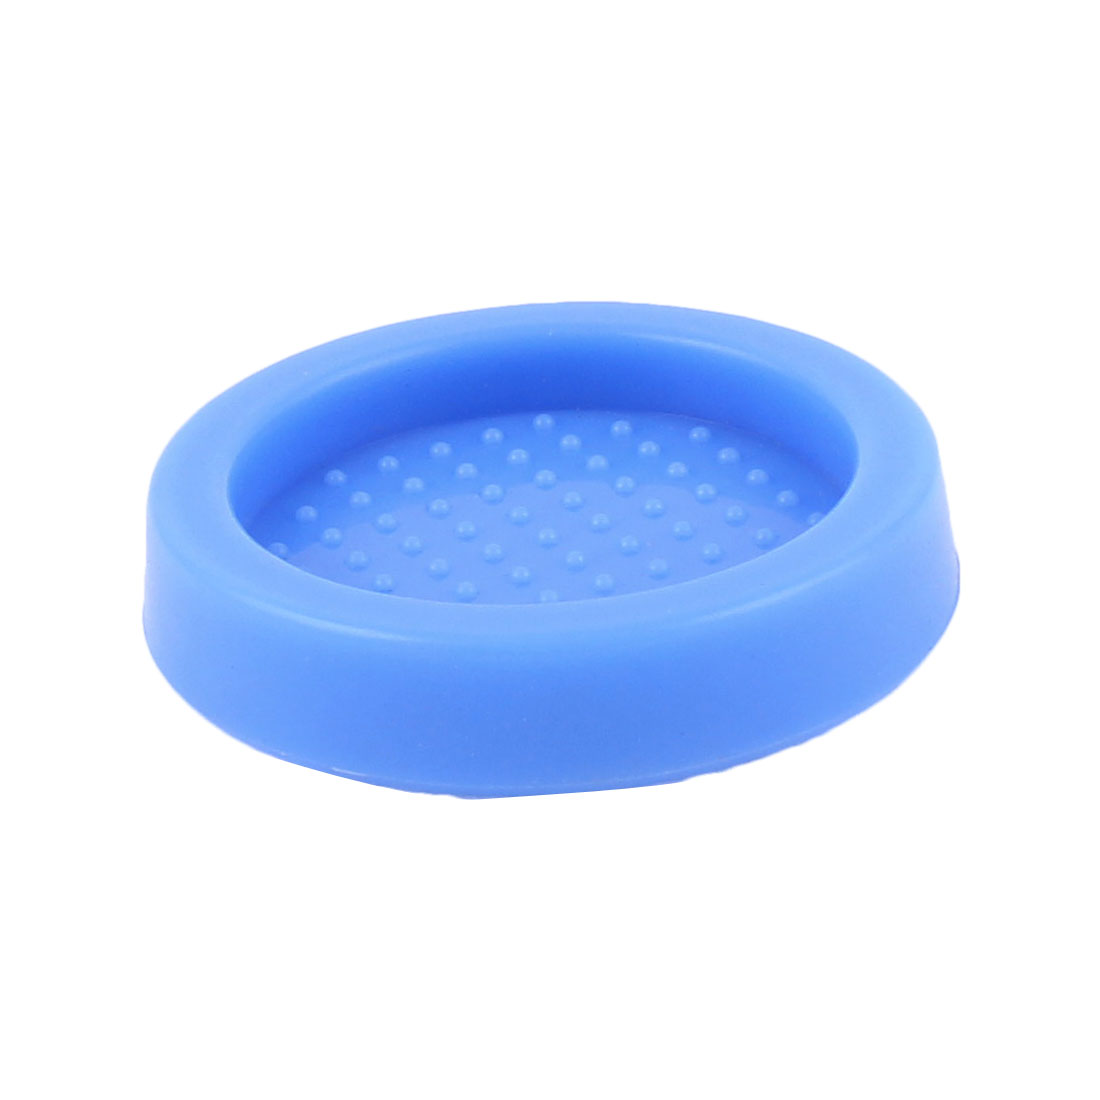 Blue Rubber Round 60mm Dia Coffee Tamper Base Seat Holder Tamping Mat Pad